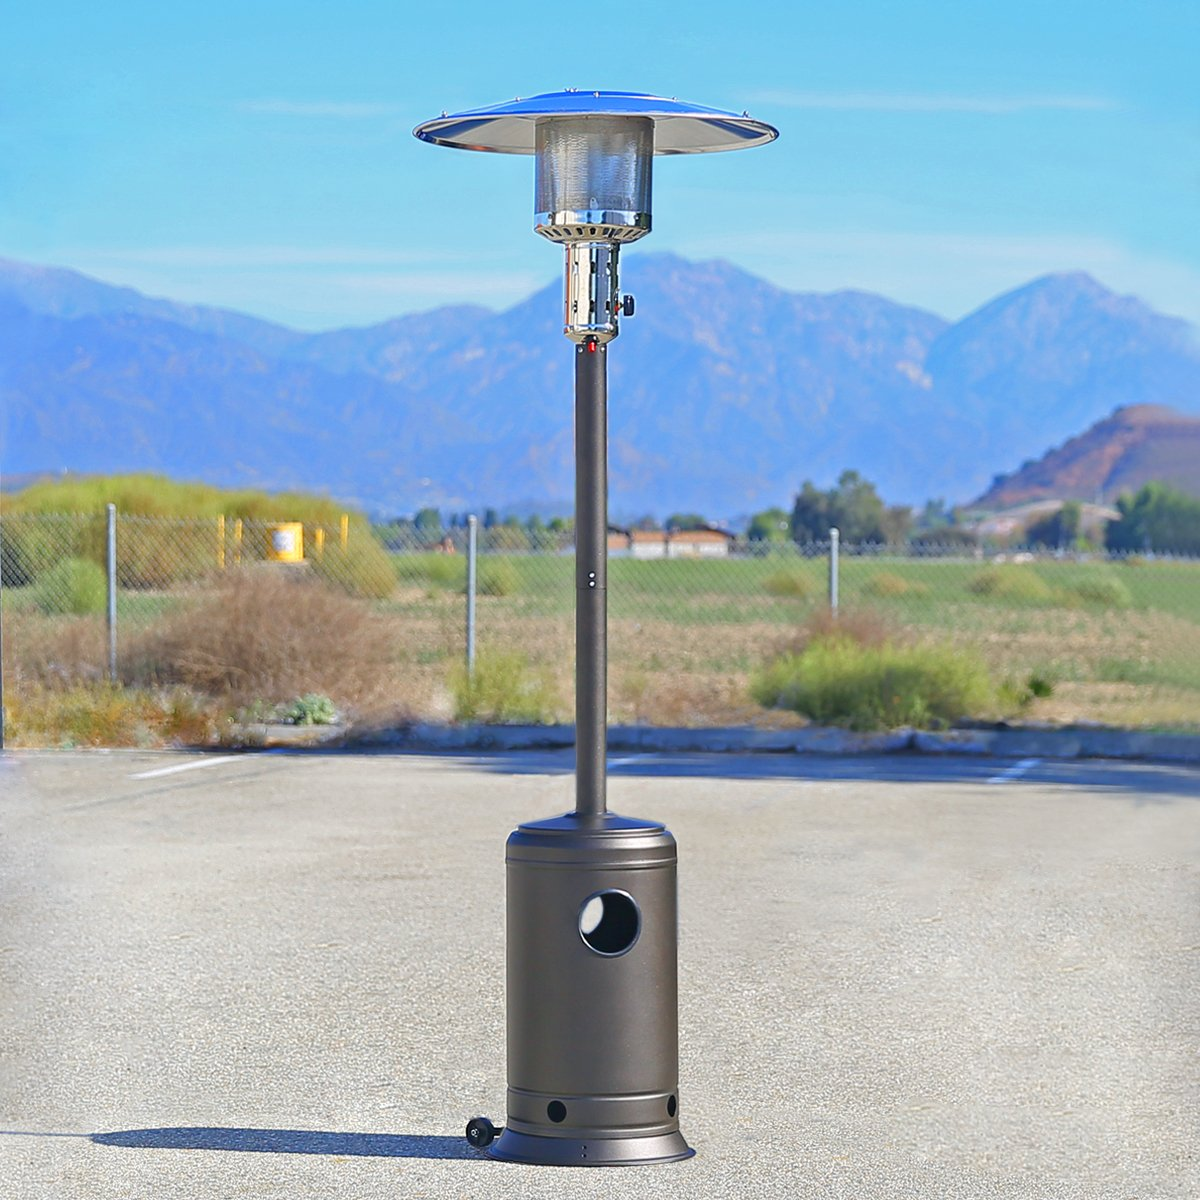 Perfect Amazon.com : XtremepowerUS 48, 000 BTU Premium Floor Standing Propane  Outdoor Patio Heater (Mocha) : Garden U0026 Outdoor